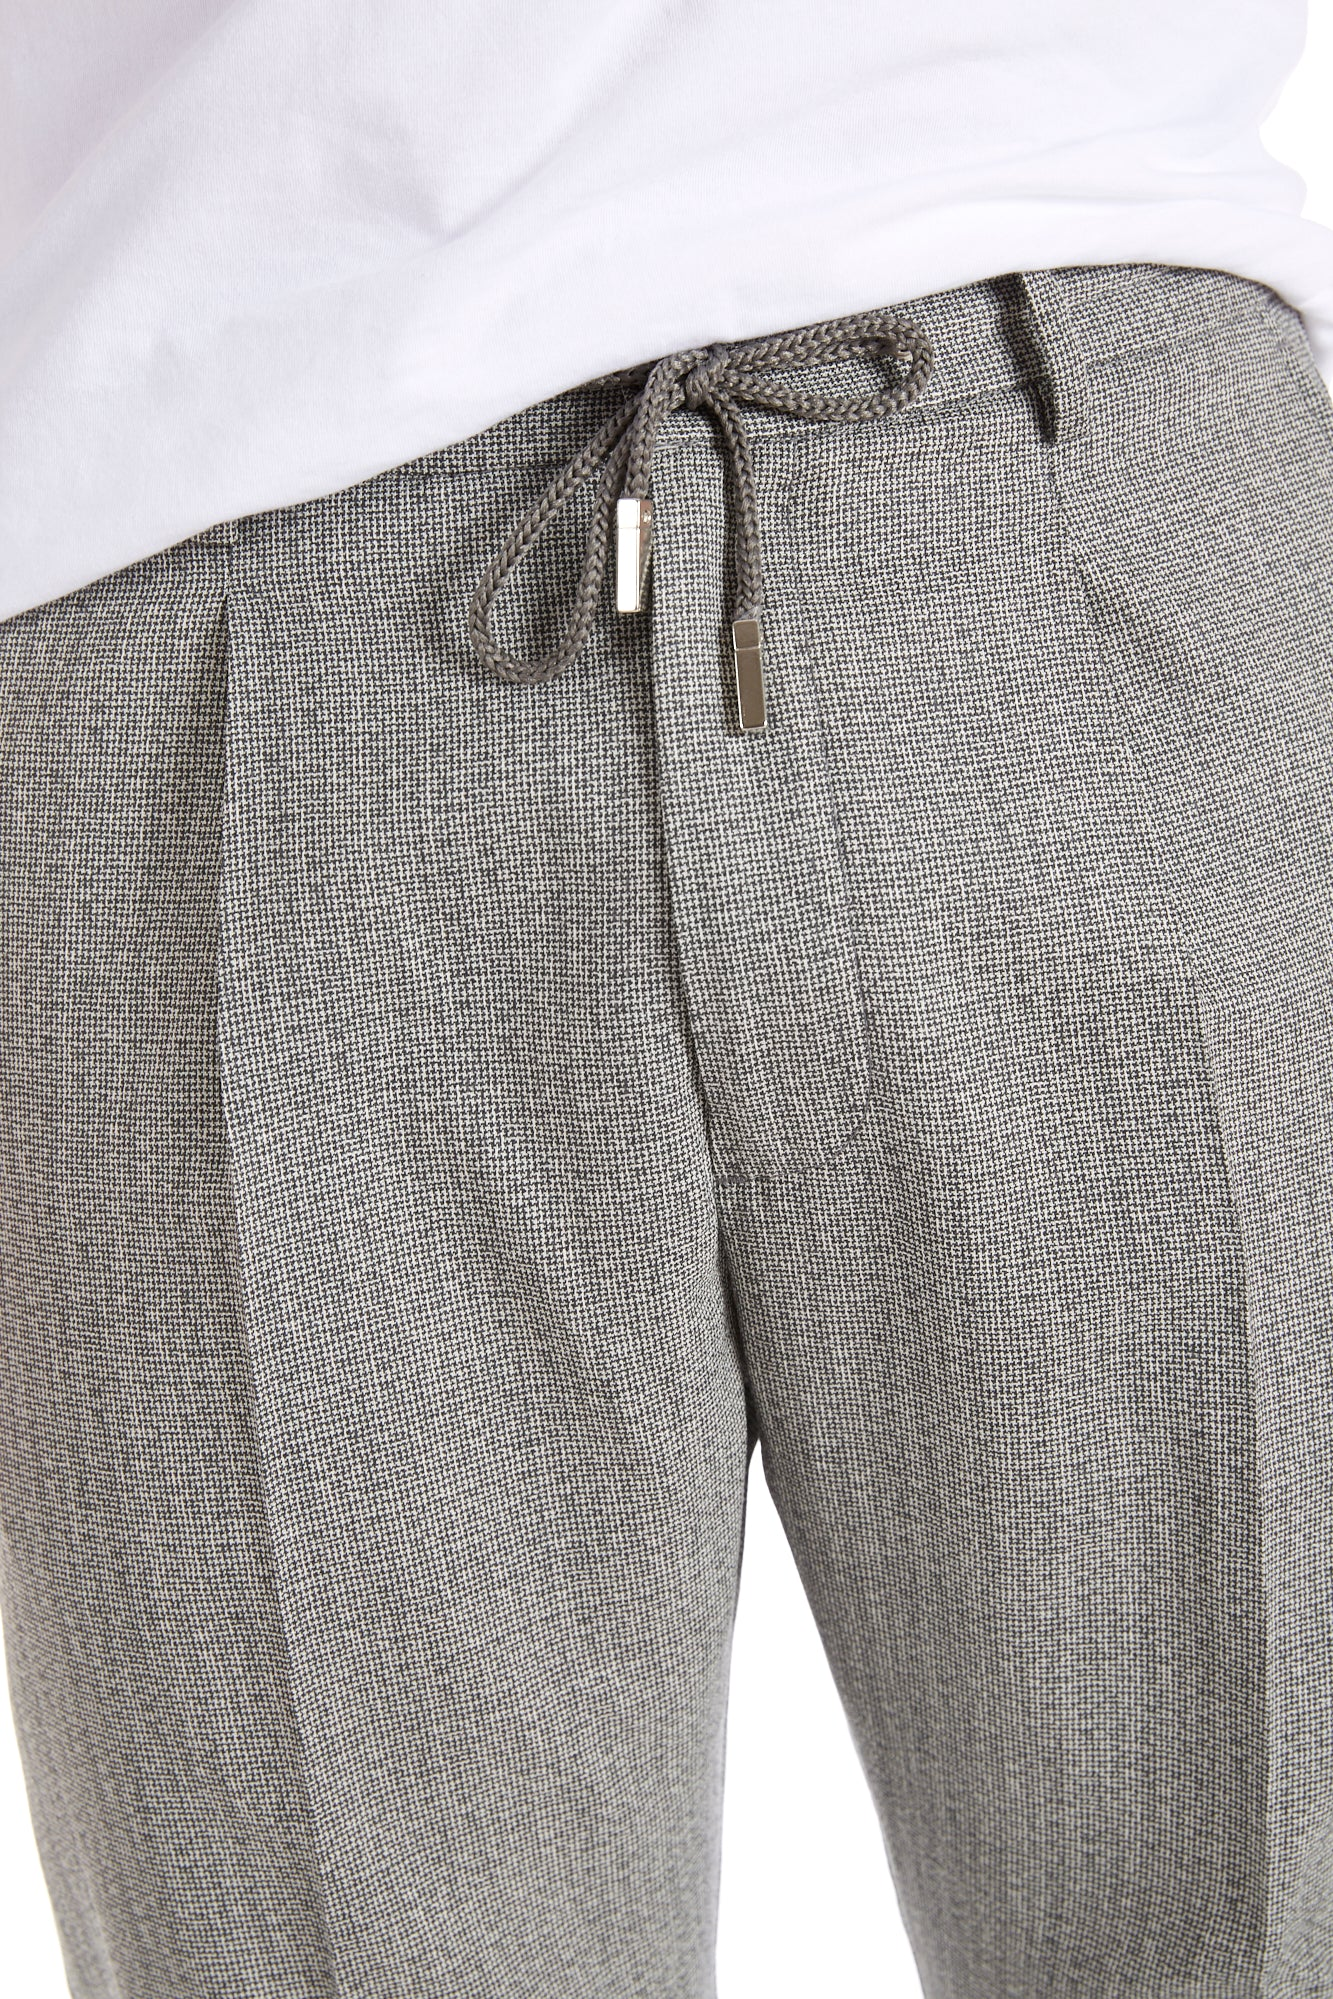 Eleventy Light Grey Herringbone Drawstring Pleated Pants - Pants - Eleventy - LALONDE's